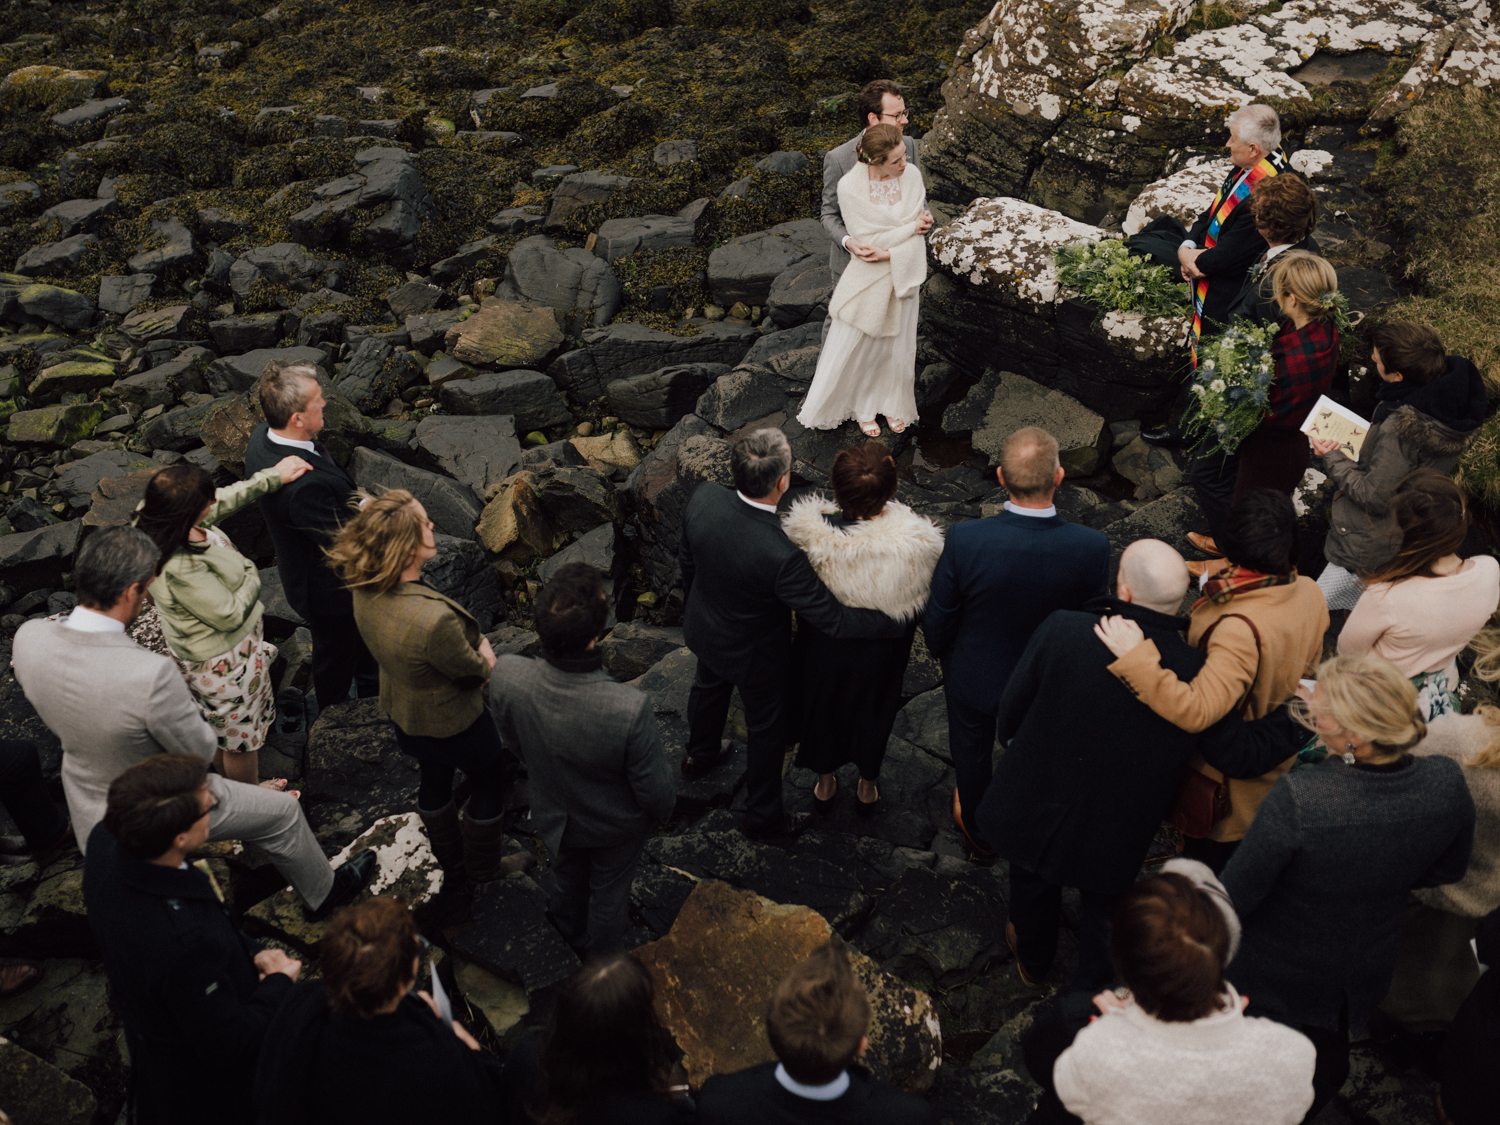 capyture-wedding-photographer-destination-nature-intimate-wedding-isle-of-skye-scotland-387